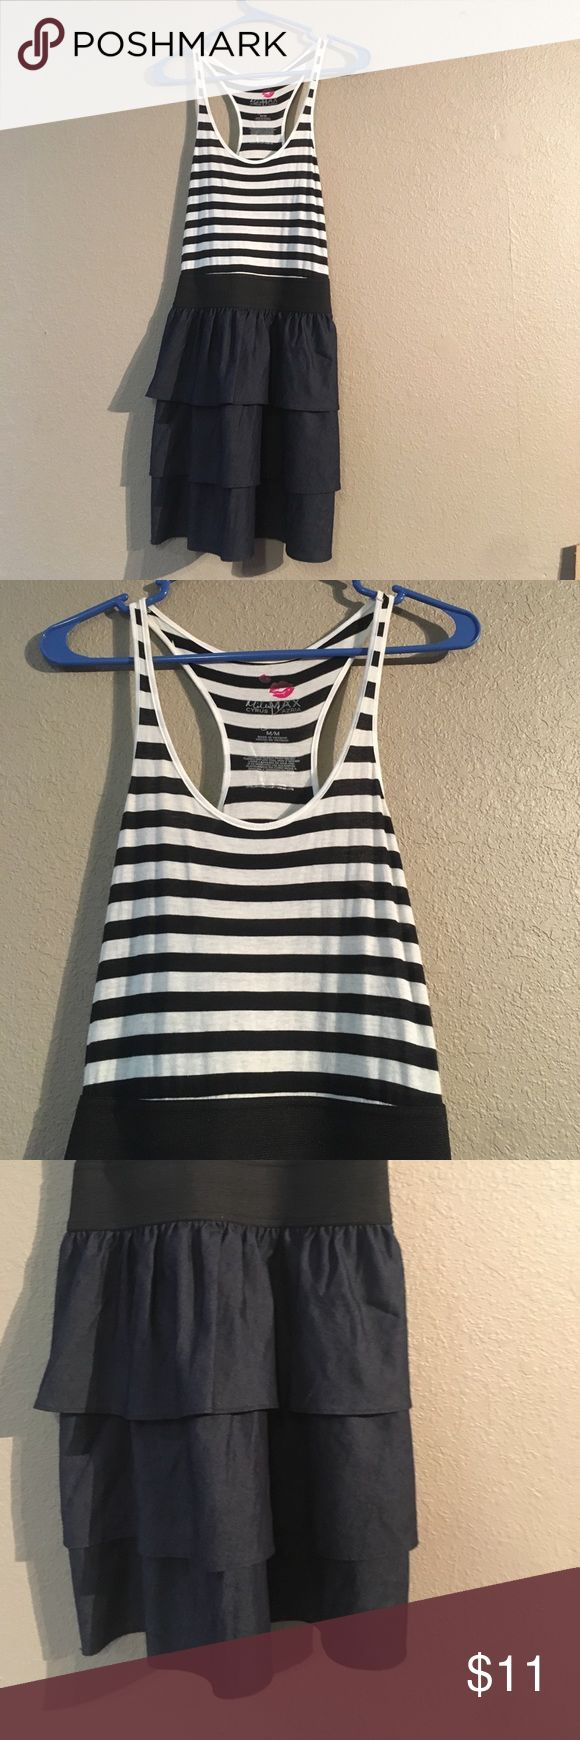 Black white Max Azria Miley Cyrus Size M Dress This dress is in wonderful condition. The upper body is made out of 100% cotton and the lower body is made out of 84% cotton and 16% polyester. It puffs out a little bit at the bottom. There's a waist band around the waist to have a perfect fit for you. This would be a perfect addition to your summer and spring closet. Miley Cyrus & Max Azria Dresses Midi